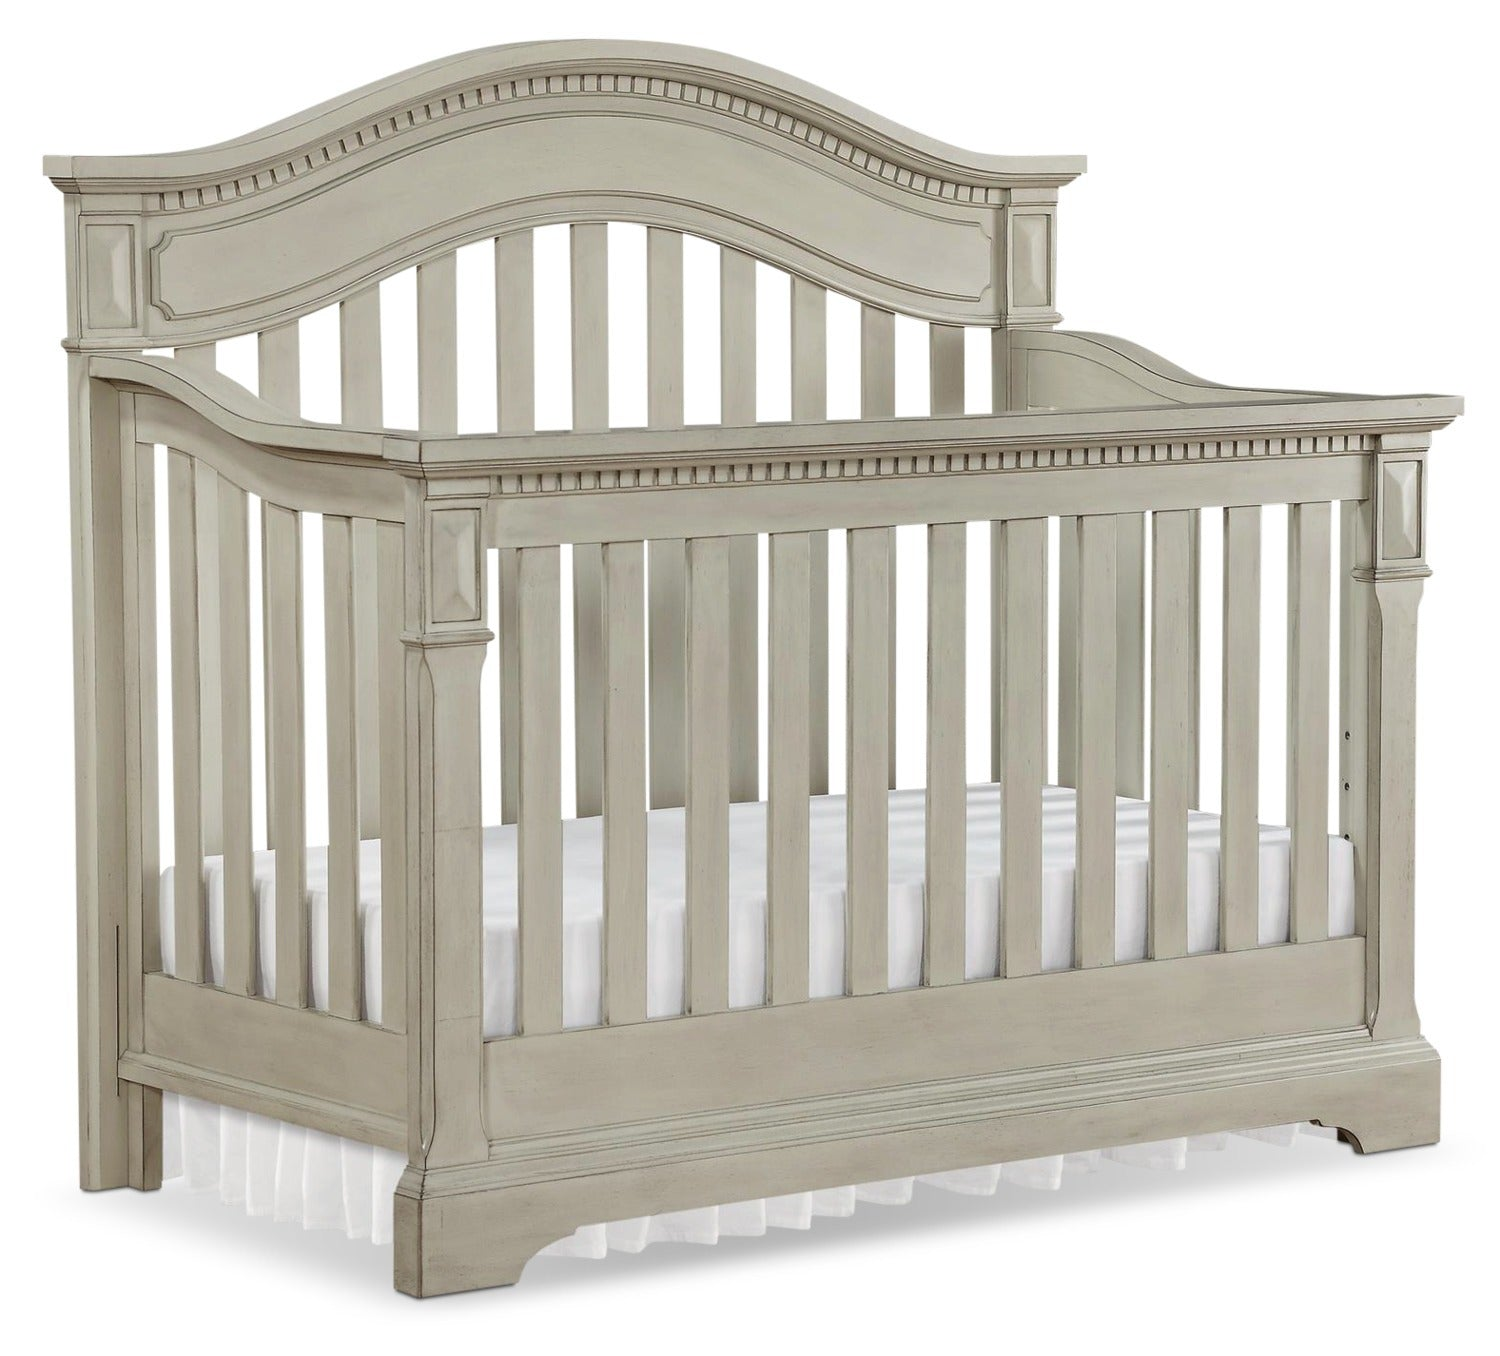 Lisa Marie 4 In 1 Convertible Crib The Brick